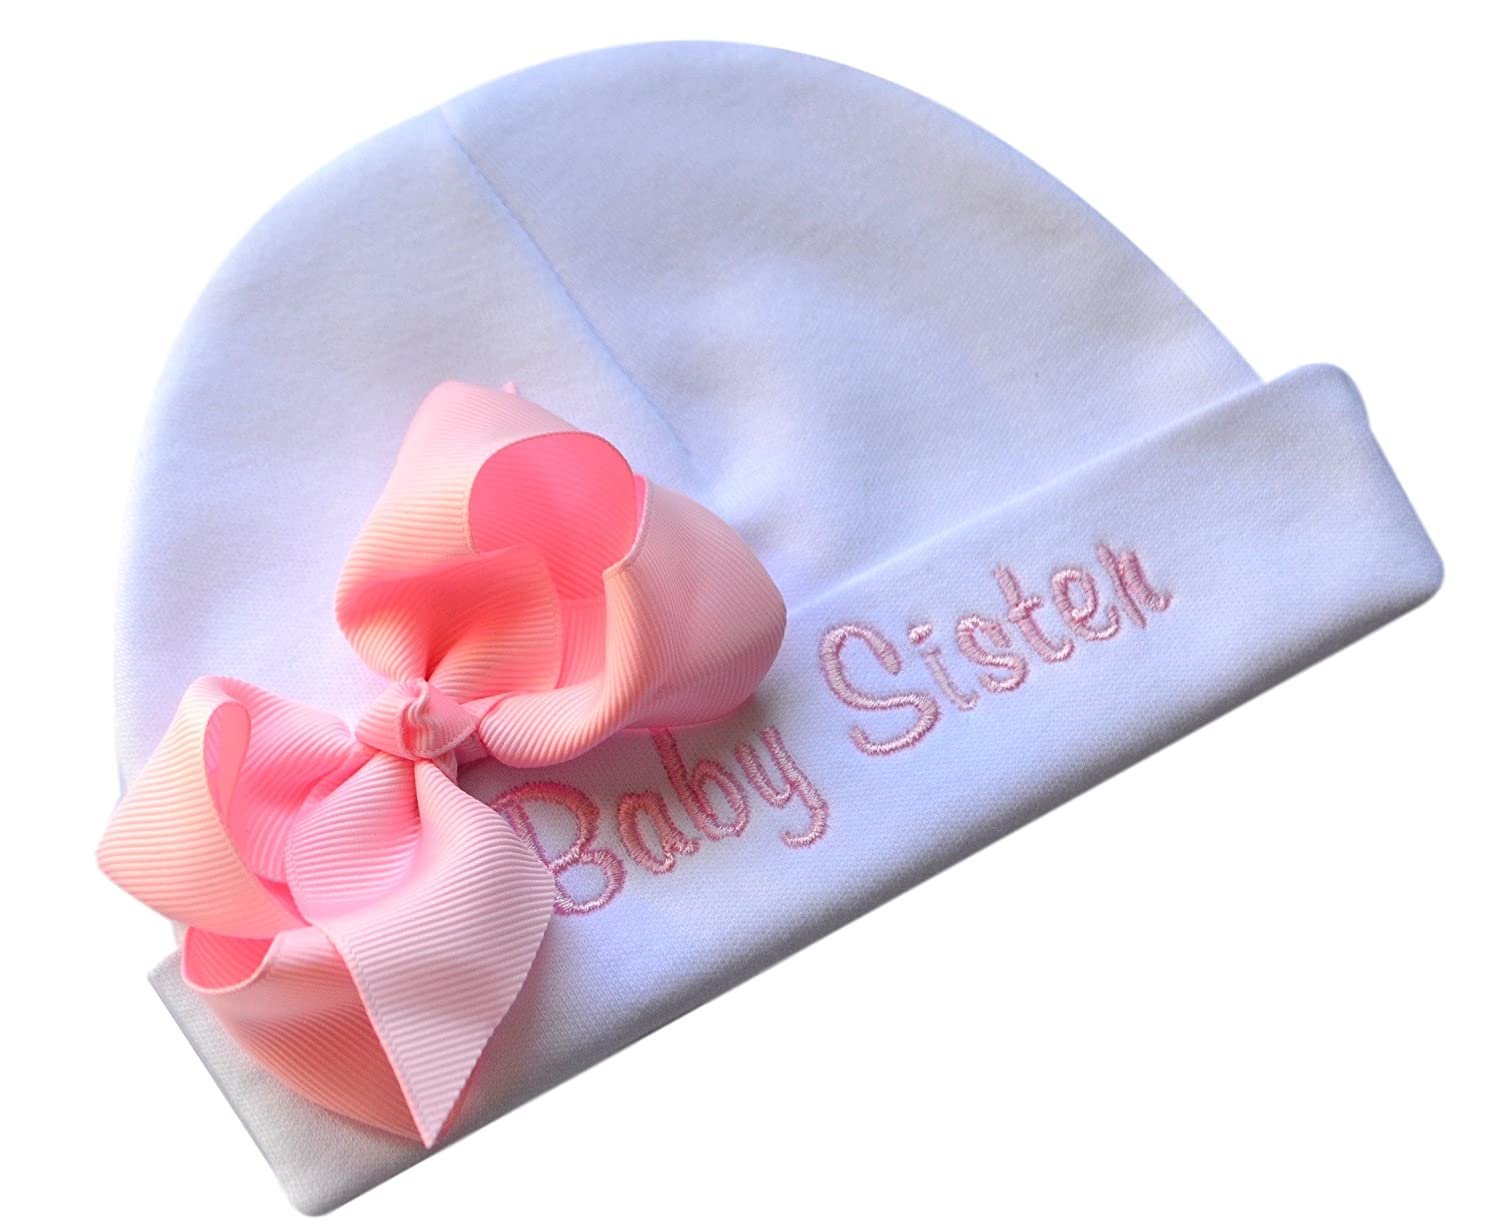 ae0f0c55f9f Personalized Embroidered Baby Girl Hat with Grosgrain Bow with Custom Name  embhatgrosgbow-fgd-15